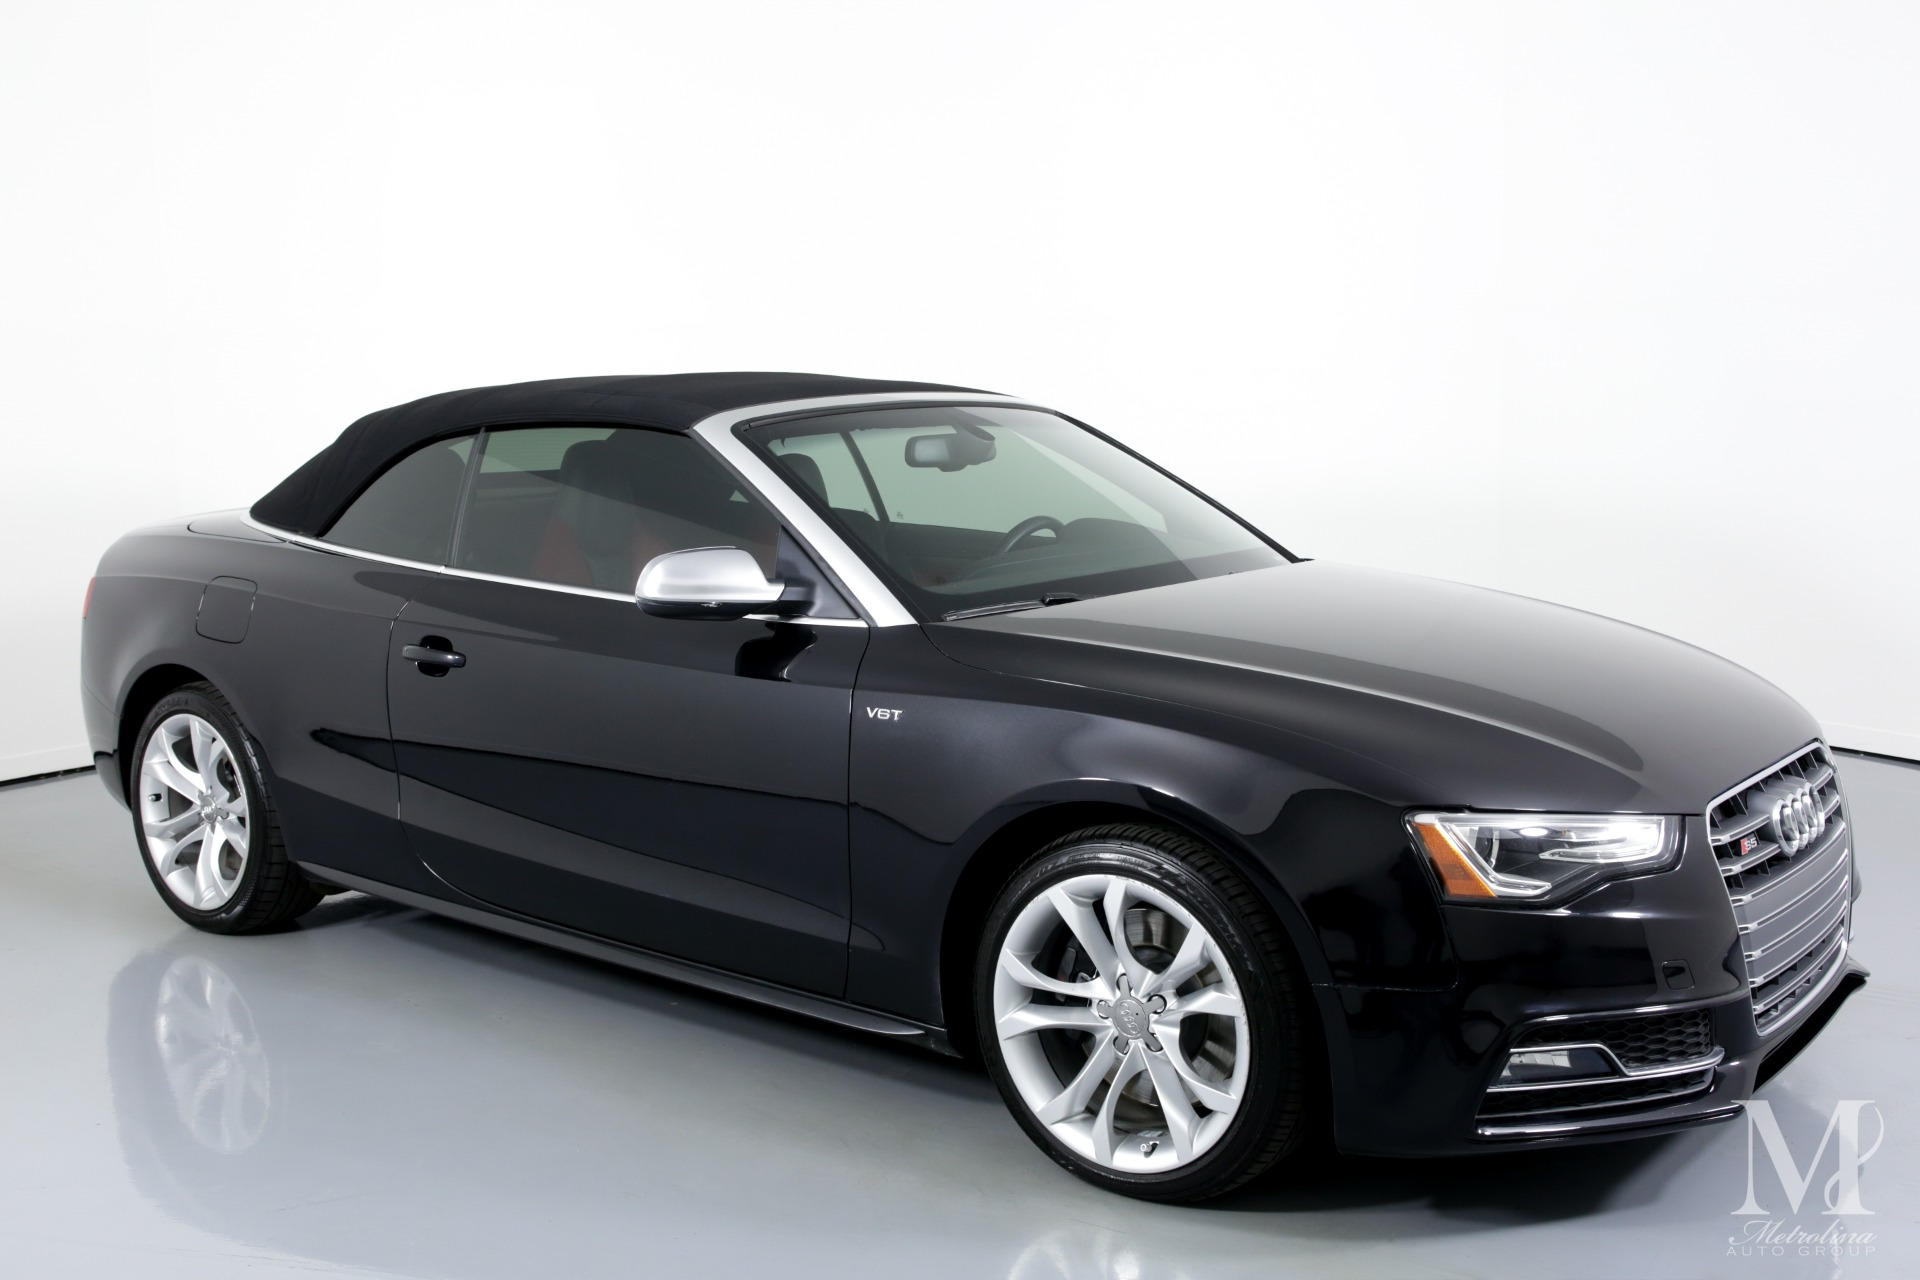 Used 2014 Audi S5 3.0T quattro Premium Plus AWD 2dr Convertible for sale $24,995 at Metrolina Auto Group in Charlotte NC 28217 - 2